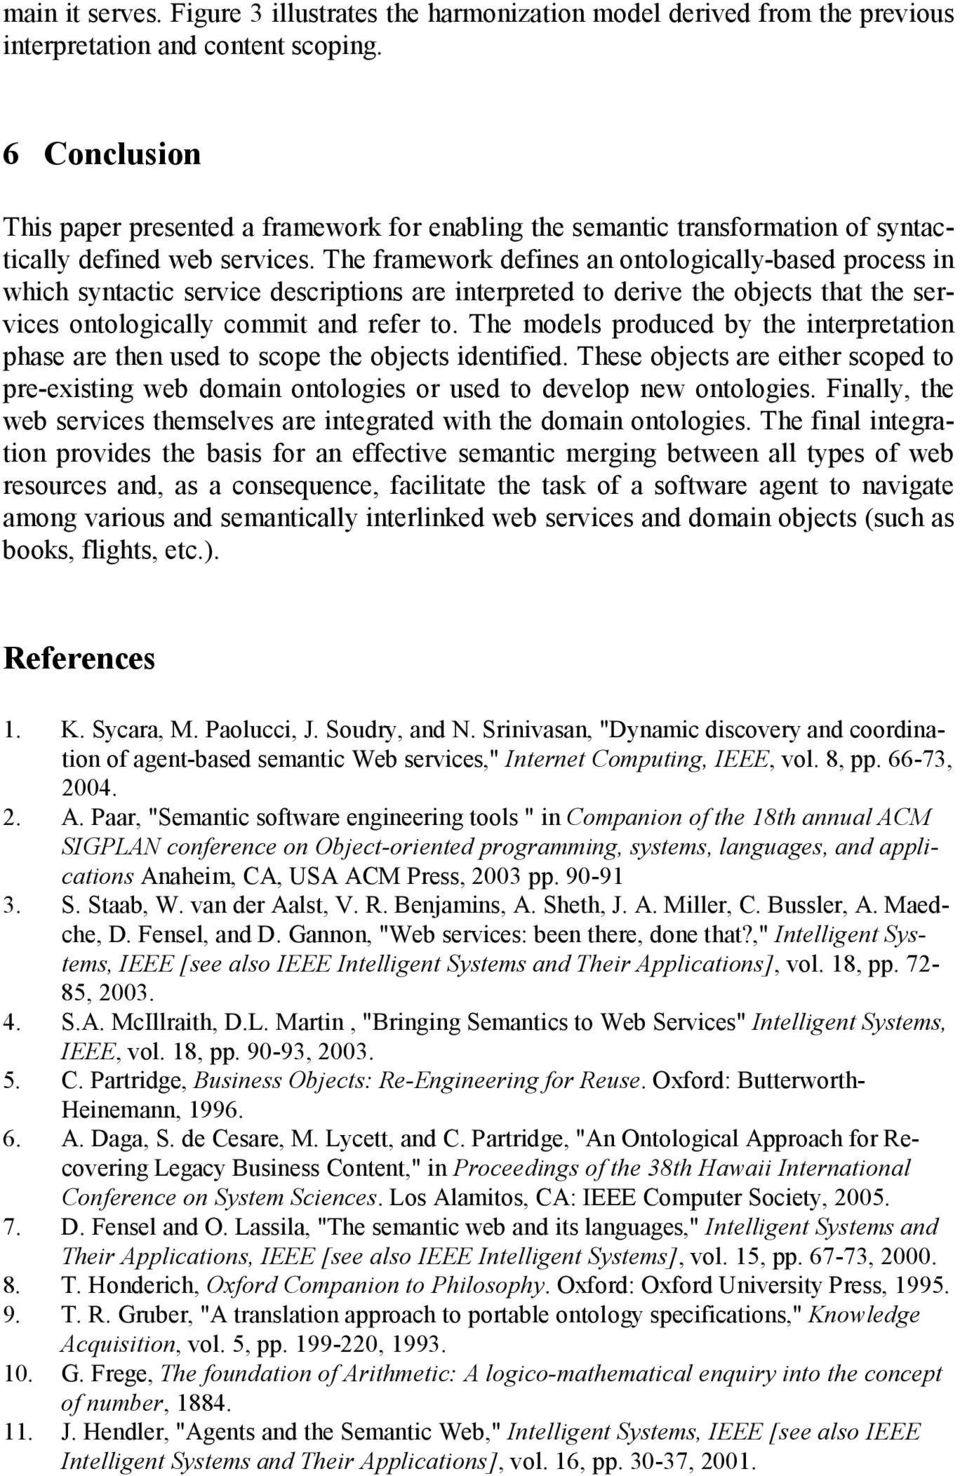 The framework defines an ontologically-based process in which syntactic service descriptions are interpreted to derive the objects that the services ontologically commit and refer to.